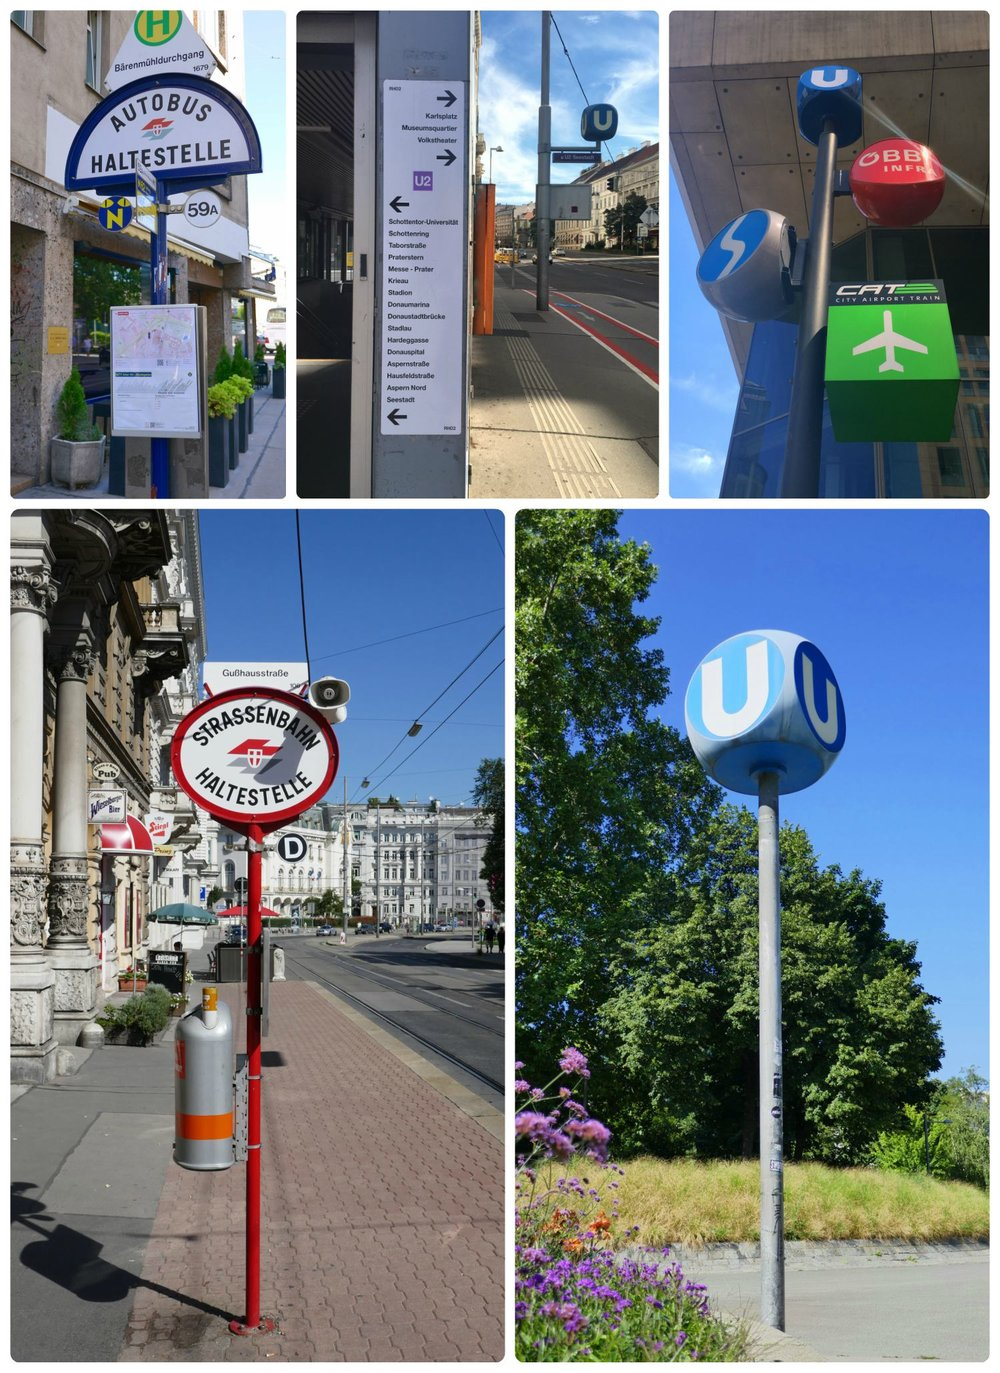 Clockwise (from the top): a bus stop, a sign with the U-Bahn line stops on the outside of the U-Bahn station, a post with signs for multiple transportation options, when looking for a U-Bahn station keep an eye out for this sign, a tram station.